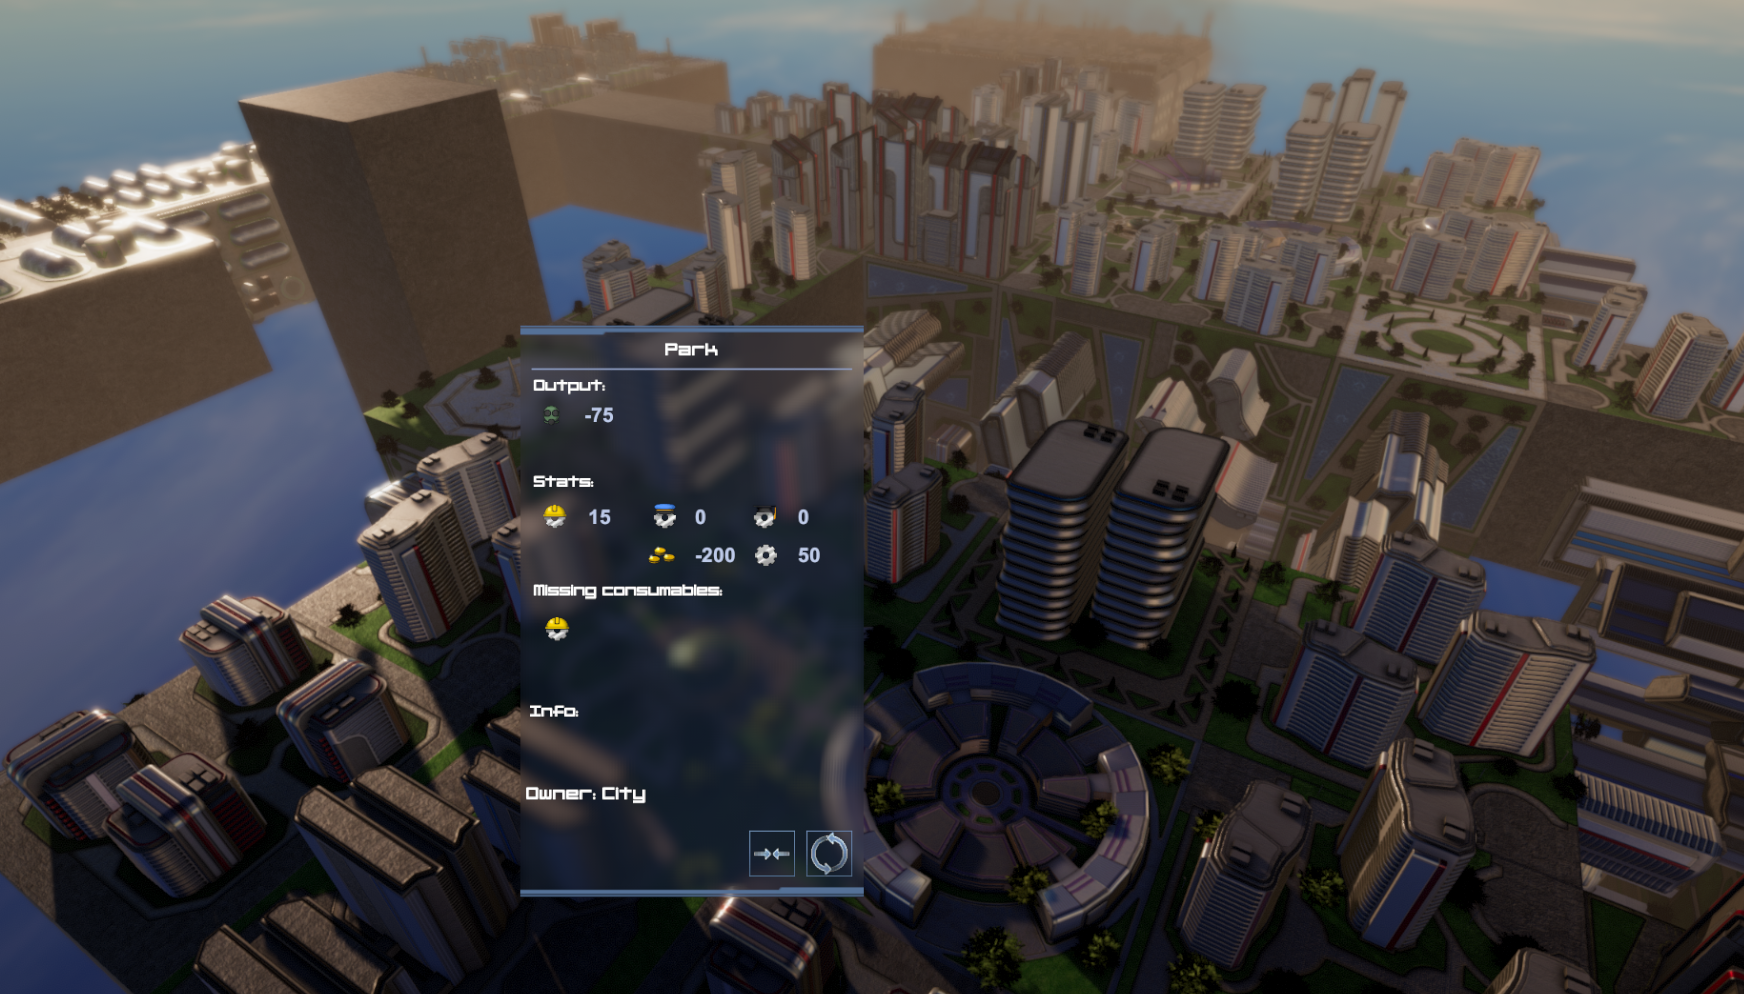 UI with building info